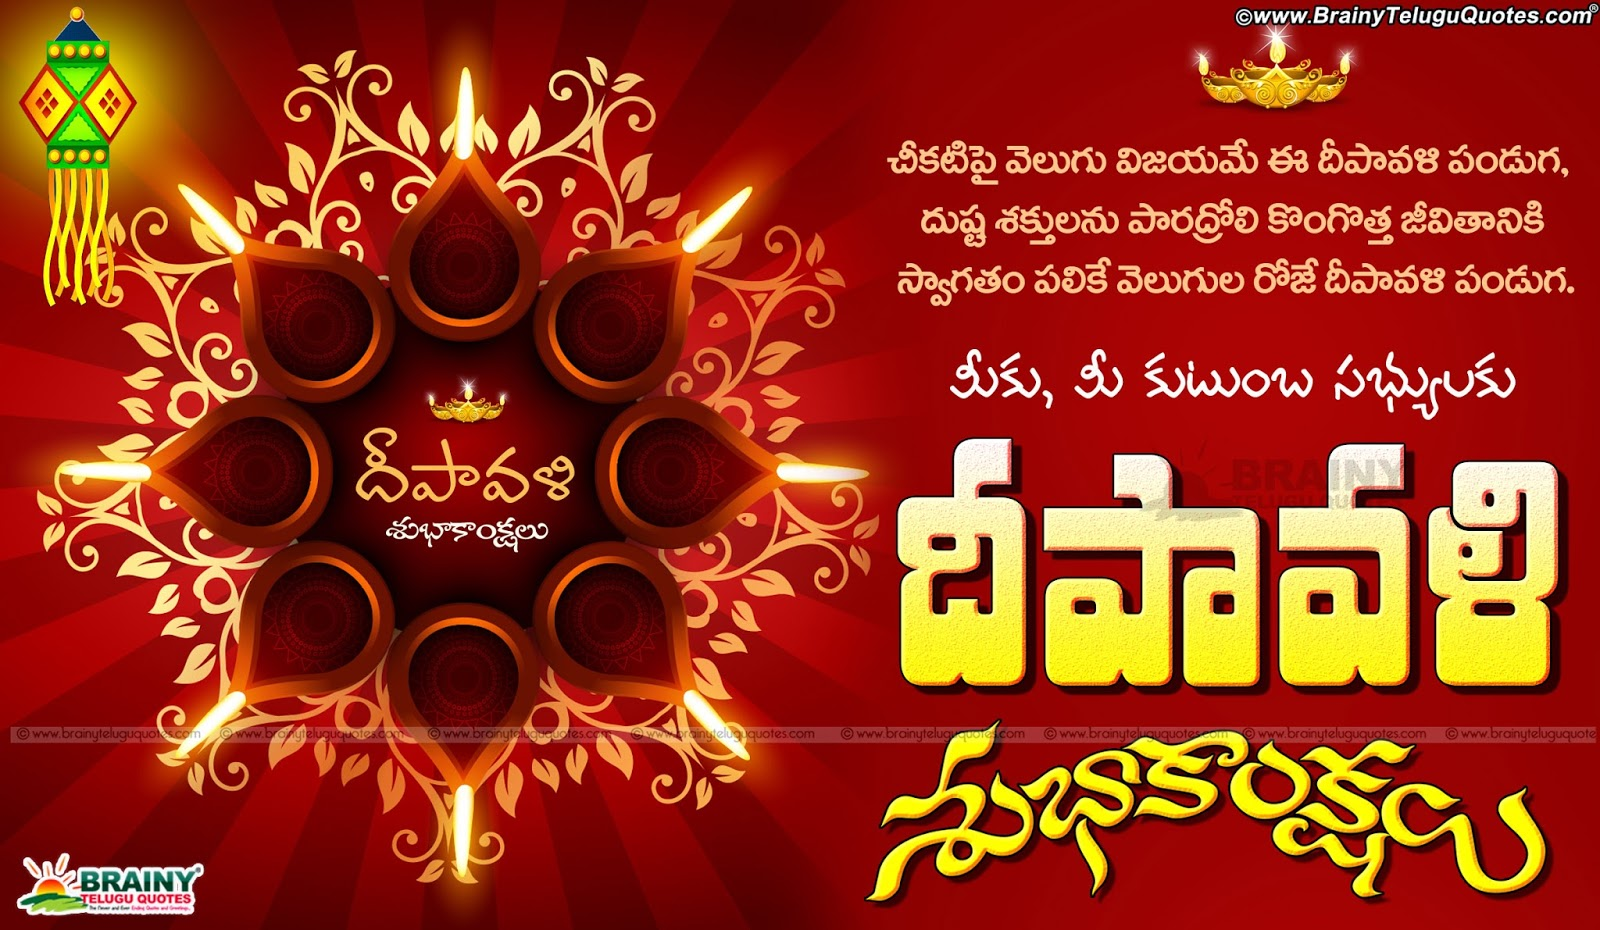 2016 Advanced Telugu Diwali Wishes Greetings Online Deepavali Telugu